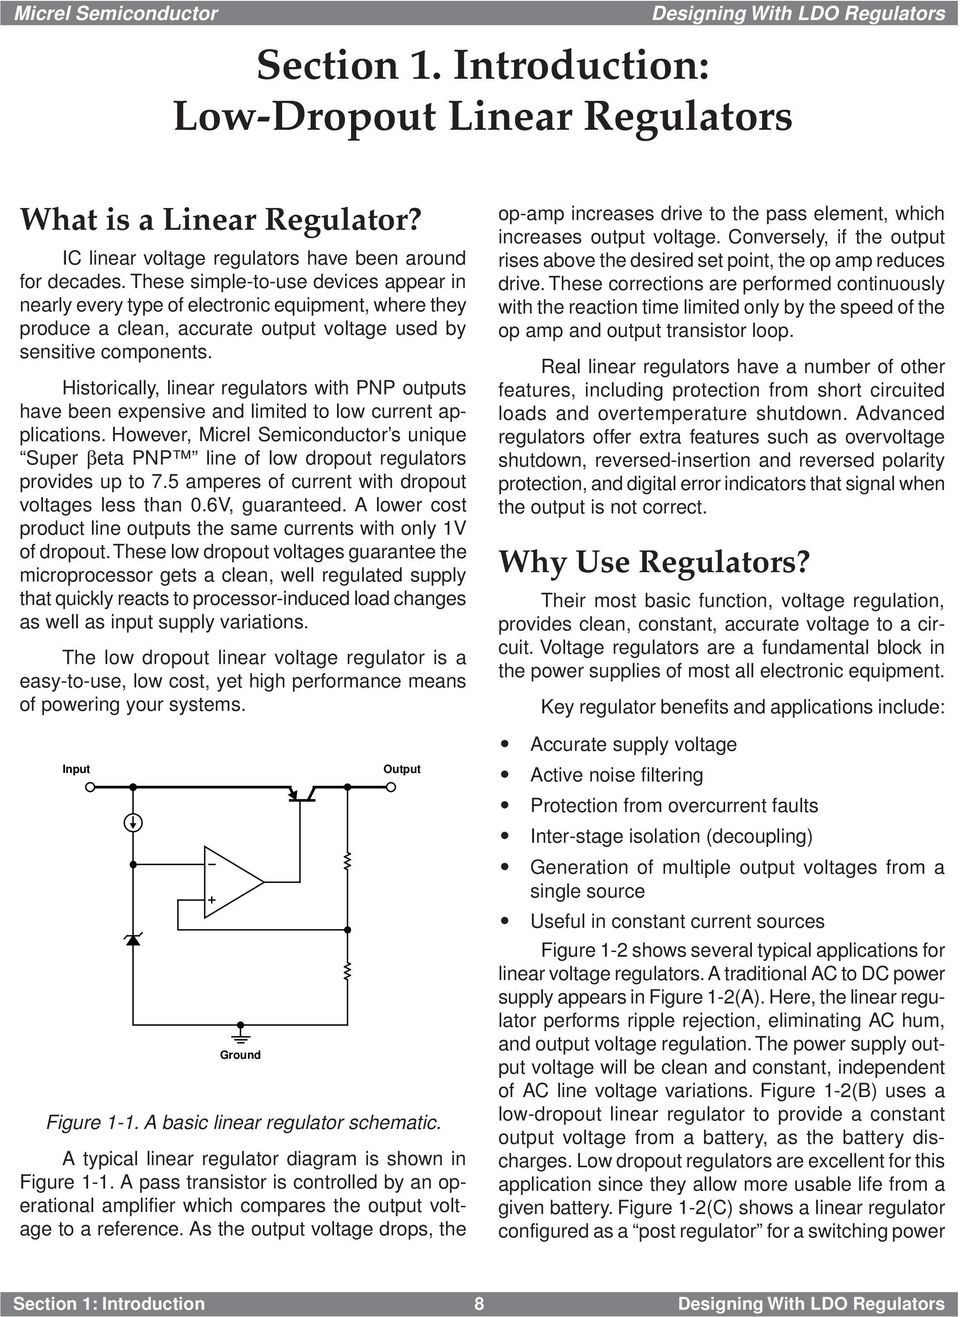 Designing With Low Dropout Voltage Regulators Pdf Positive Regulator Pnp Boost Historically Linear Outputs Have Been Expensive And Limited To Current Applications